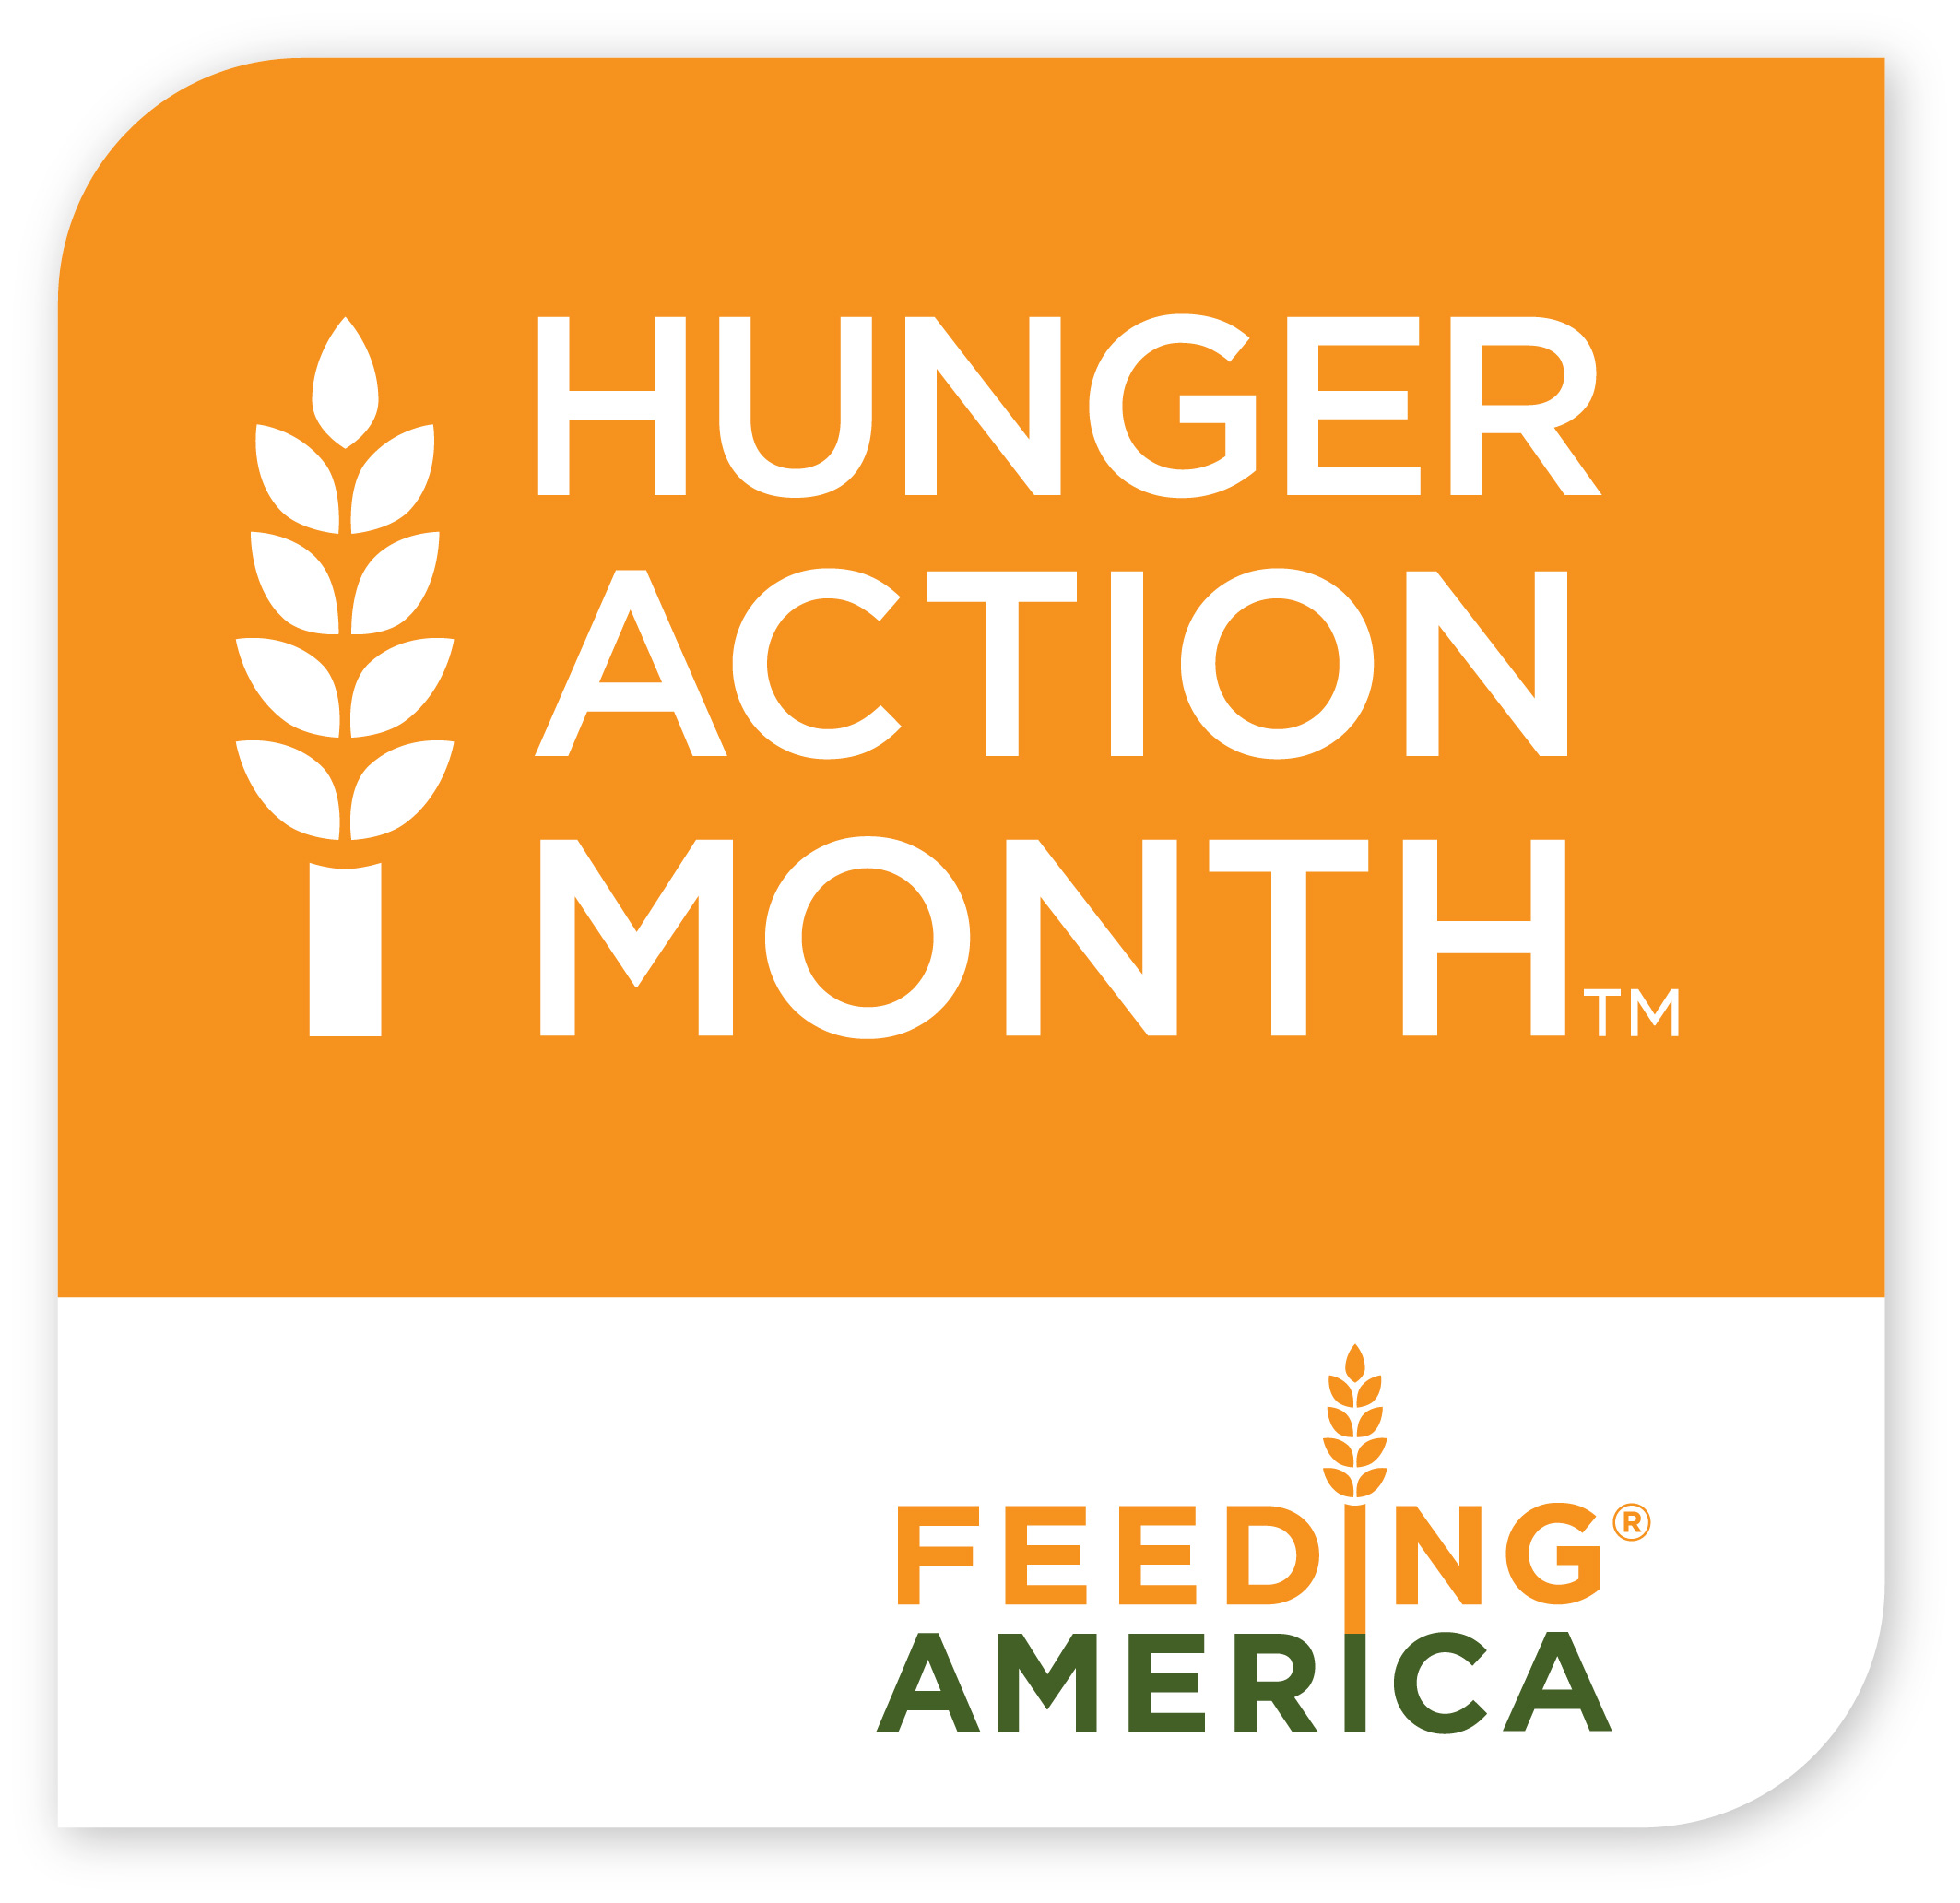 Hunger Action Month - Feeding America logo